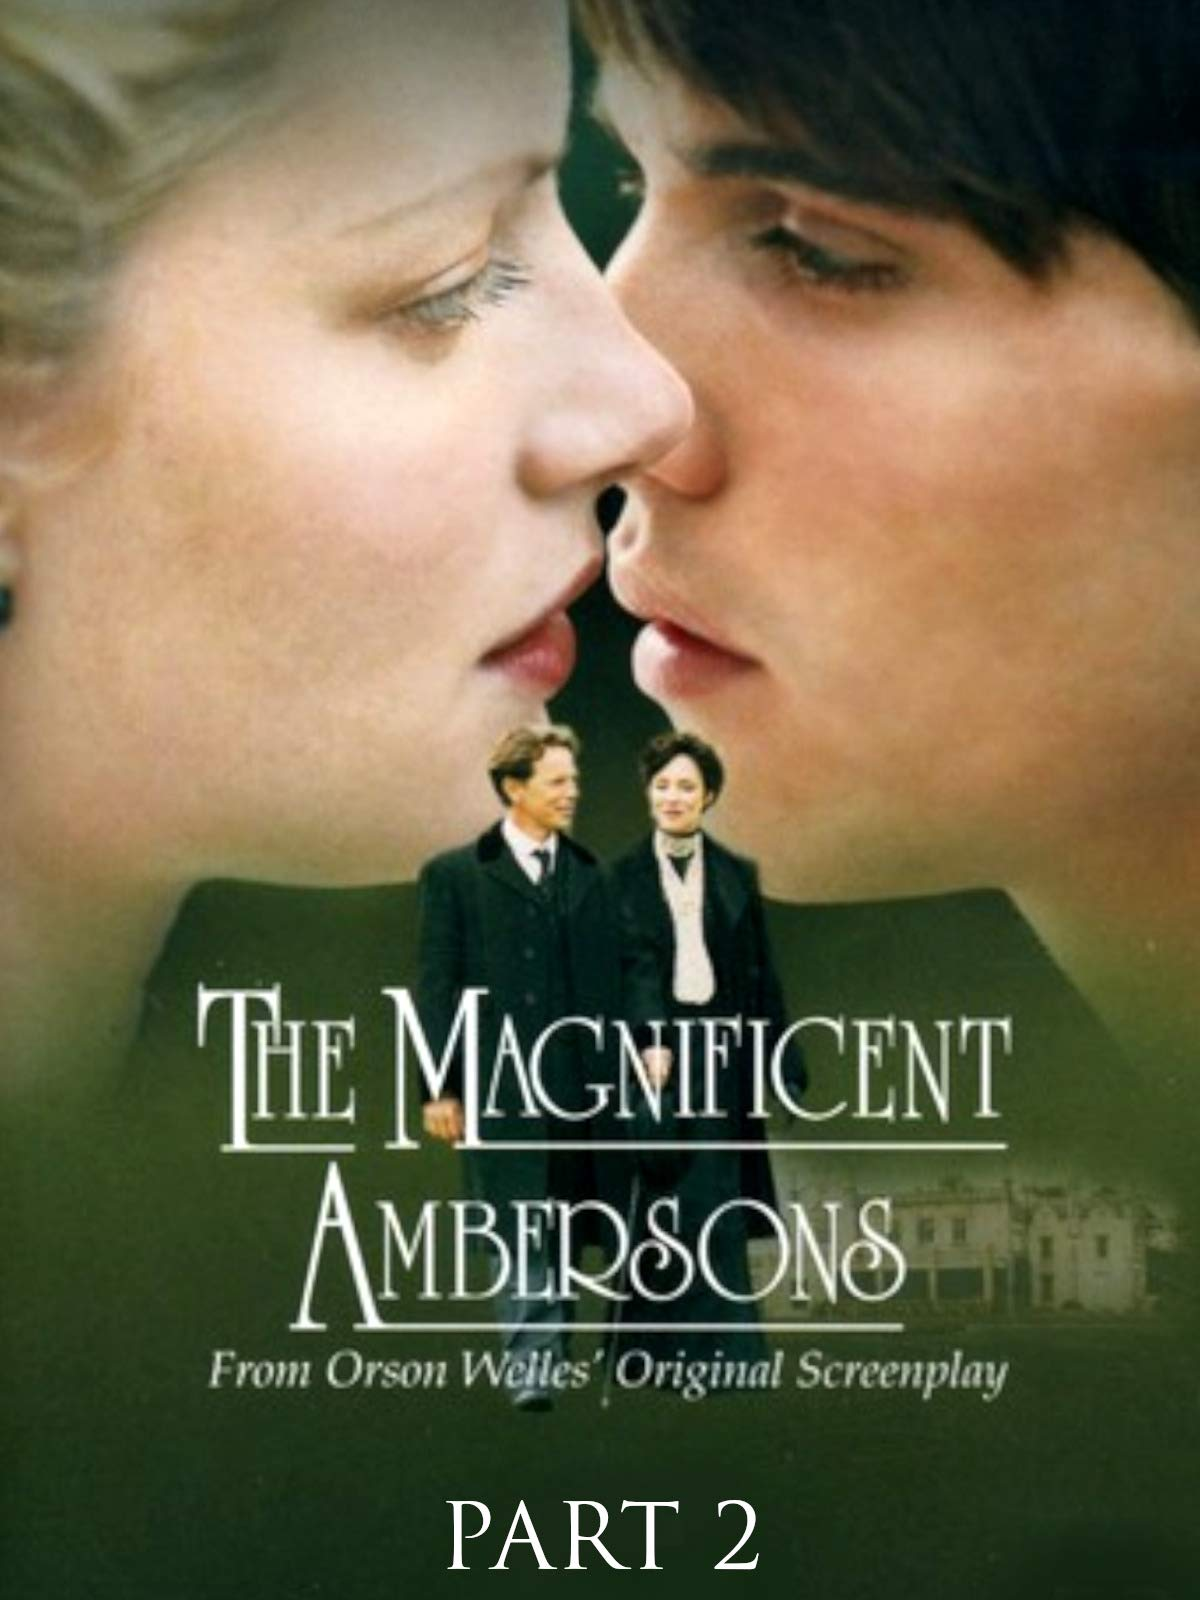 The Magnificent Ambersons (Second Part)